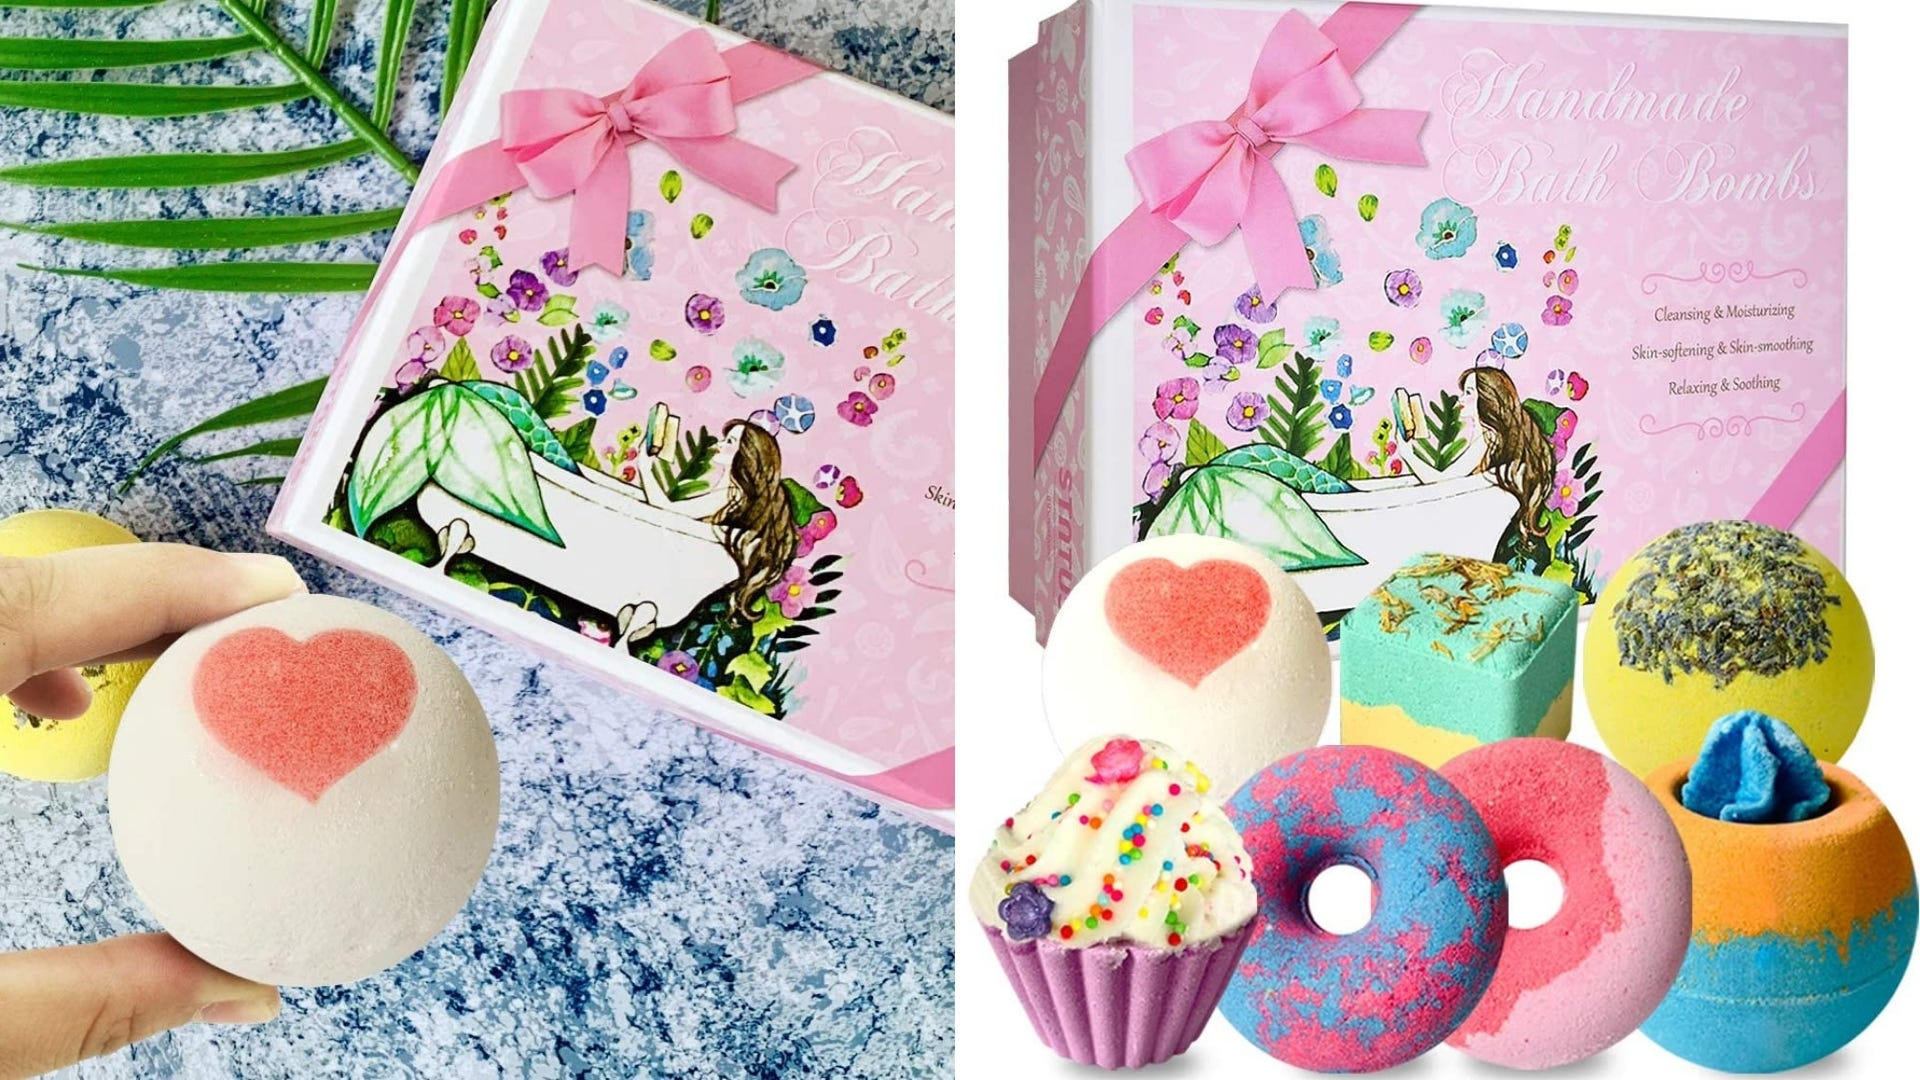 A person holds a bath bomb over the package; Seven different bath bombs are shown.